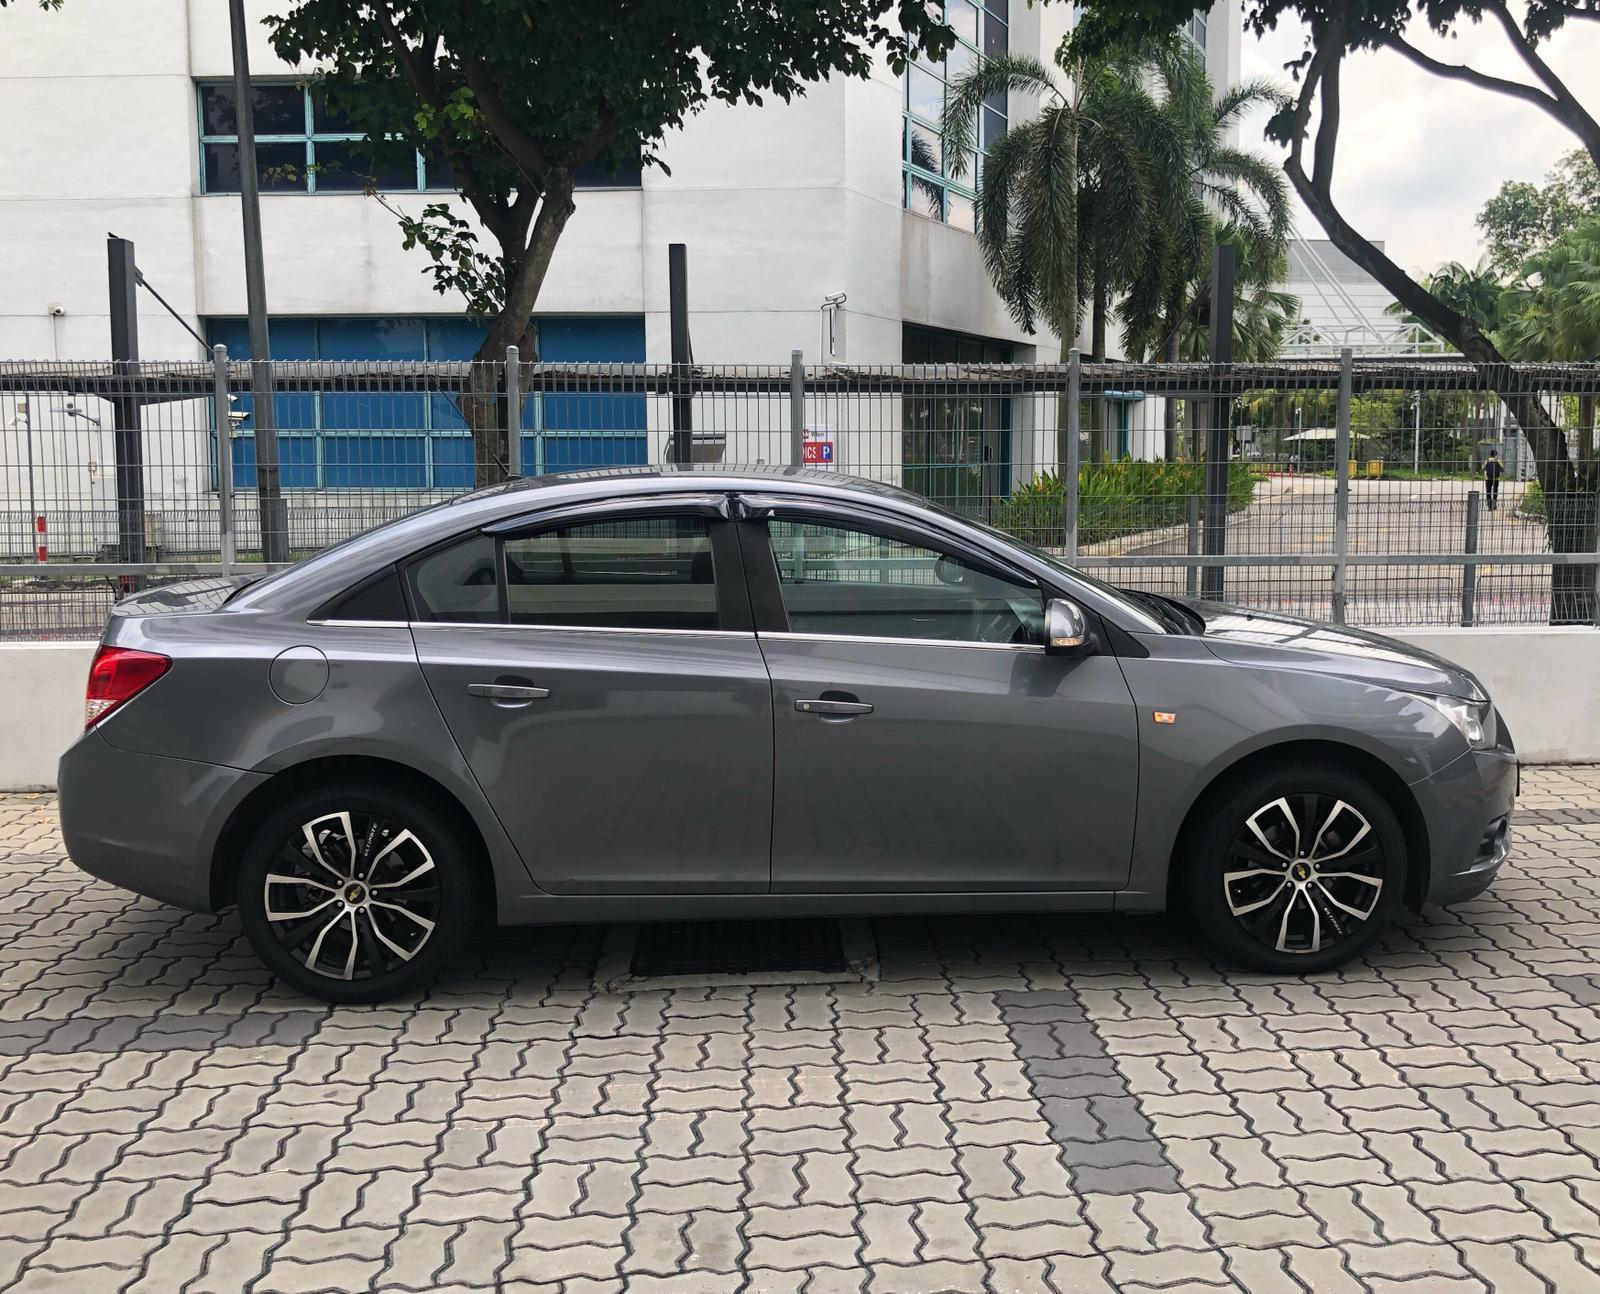 Chevrolet Cruze 1.6A CHEAPEST CAR RENTAL for Grab GoJek or Personal use